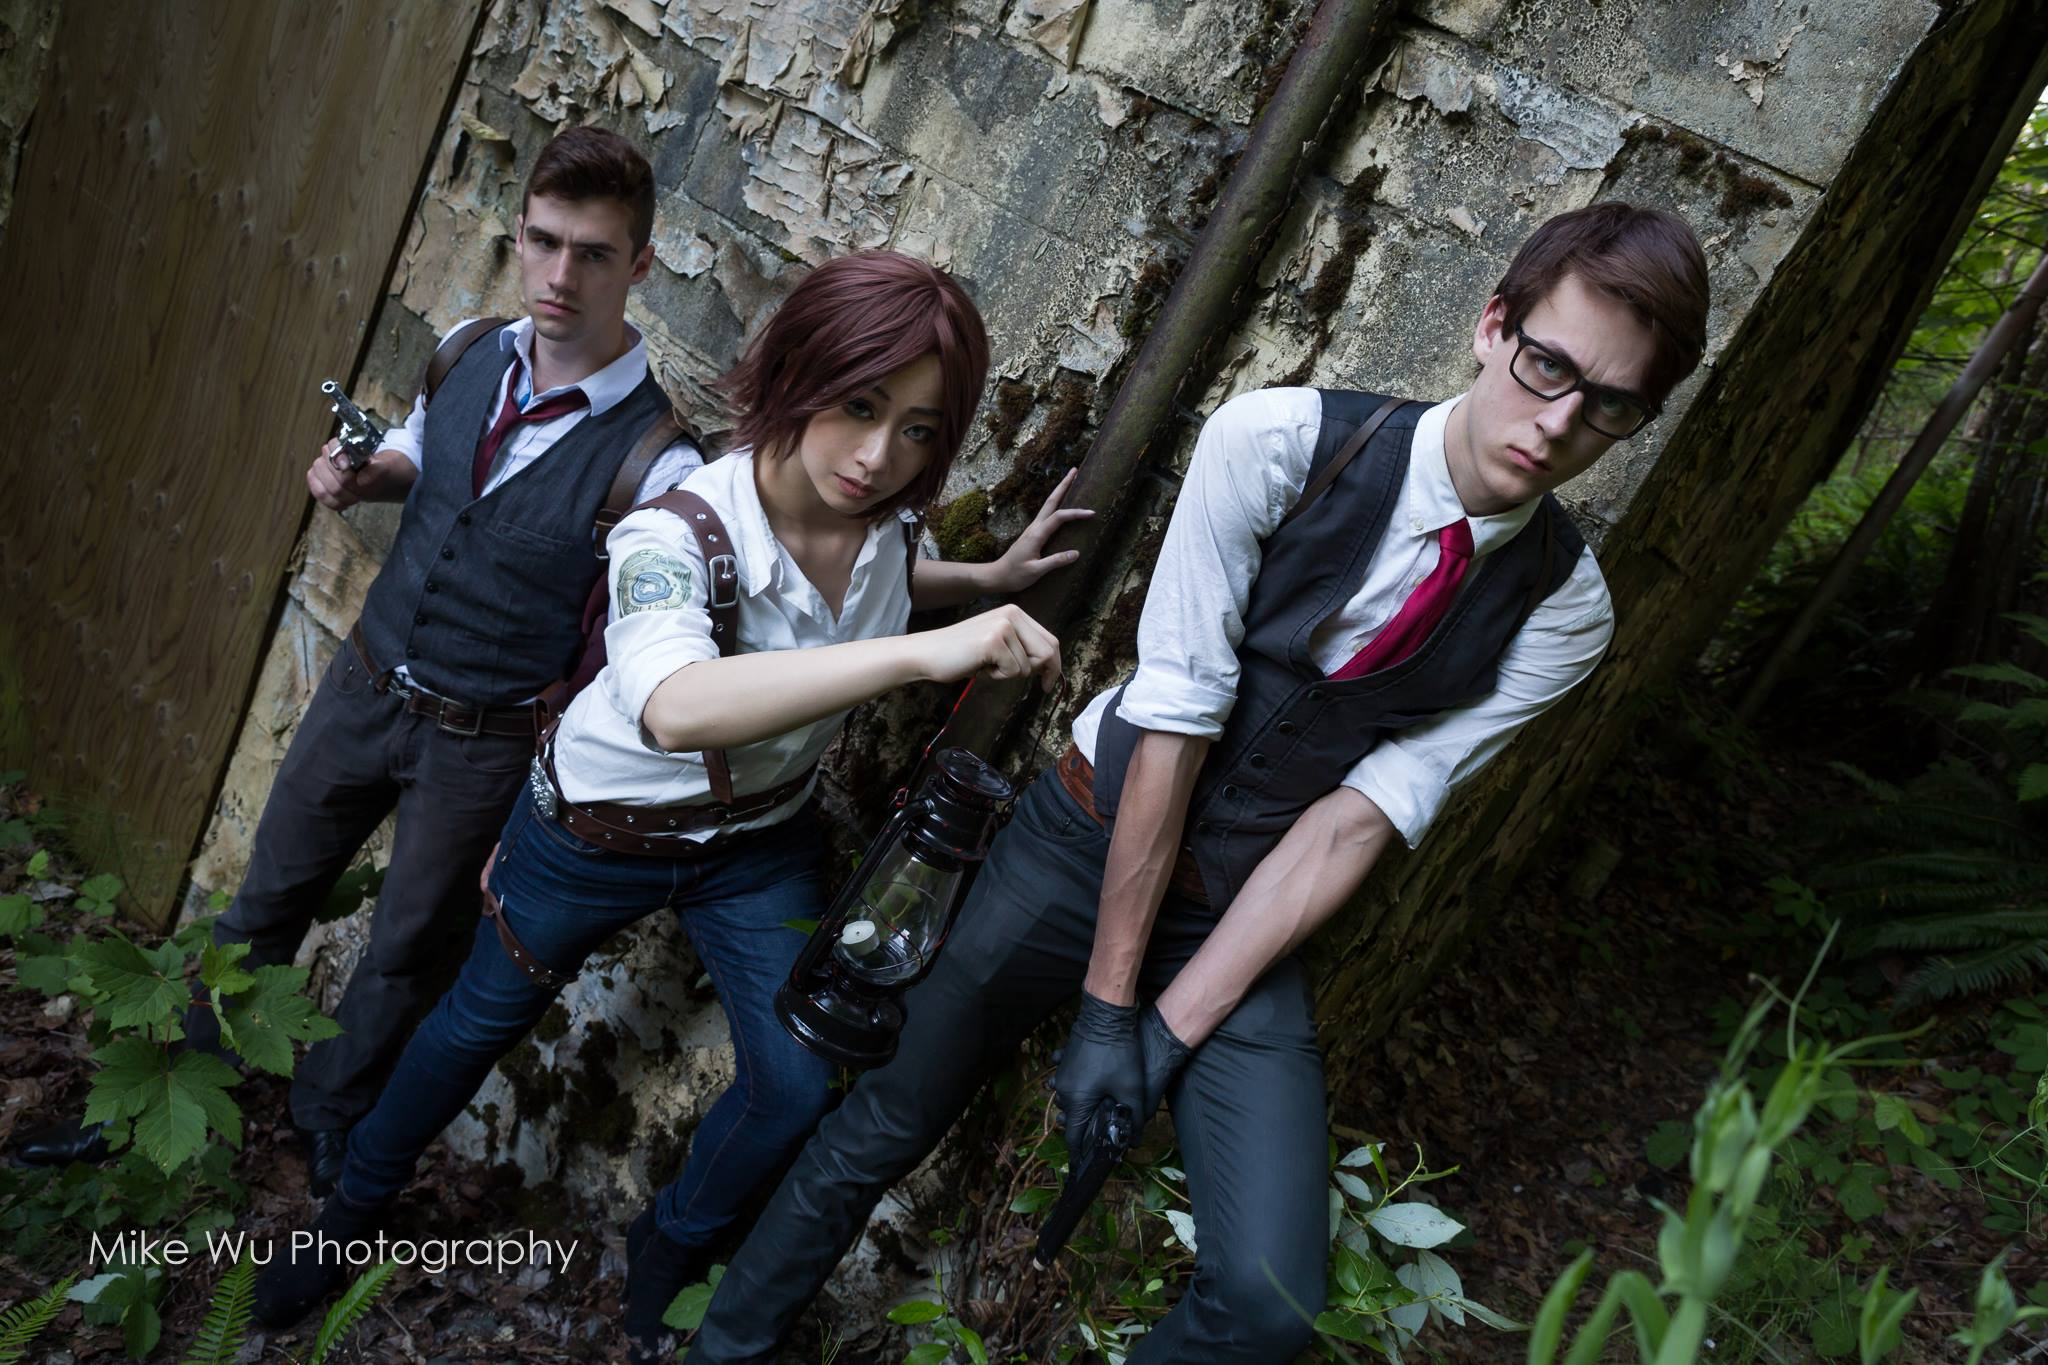 cosplay, Sebastian Castellanos, Juli Kidman, Joseph Oda, The Evil Within, game, horror, environment, spooky